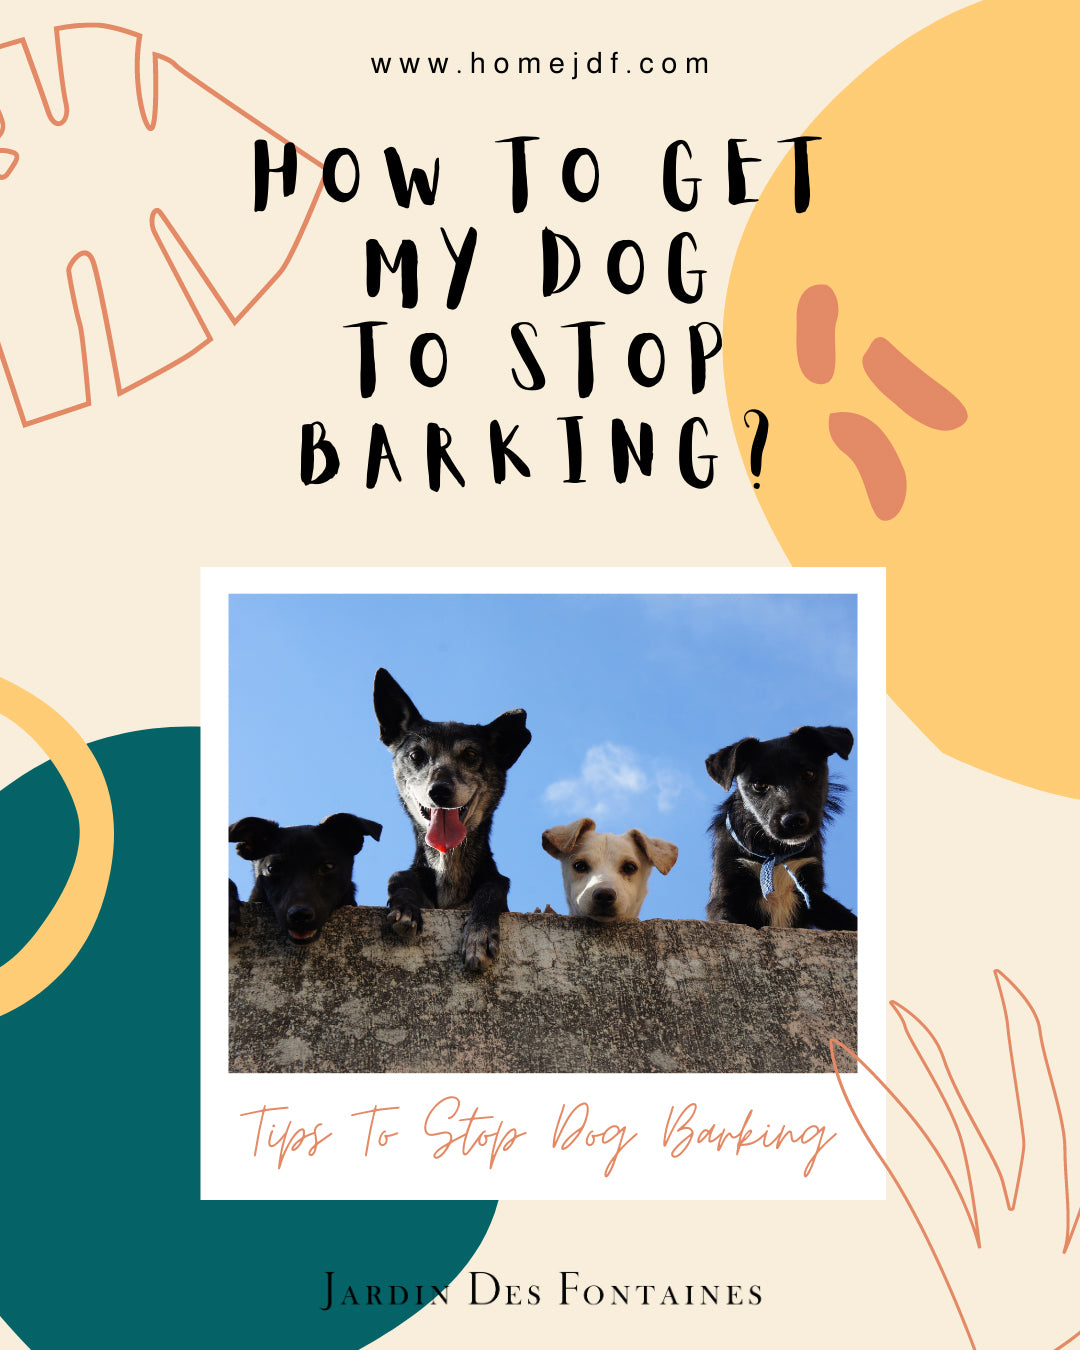 How To Get My Dog To Stop Barking? Tips To Stop Dog Barking